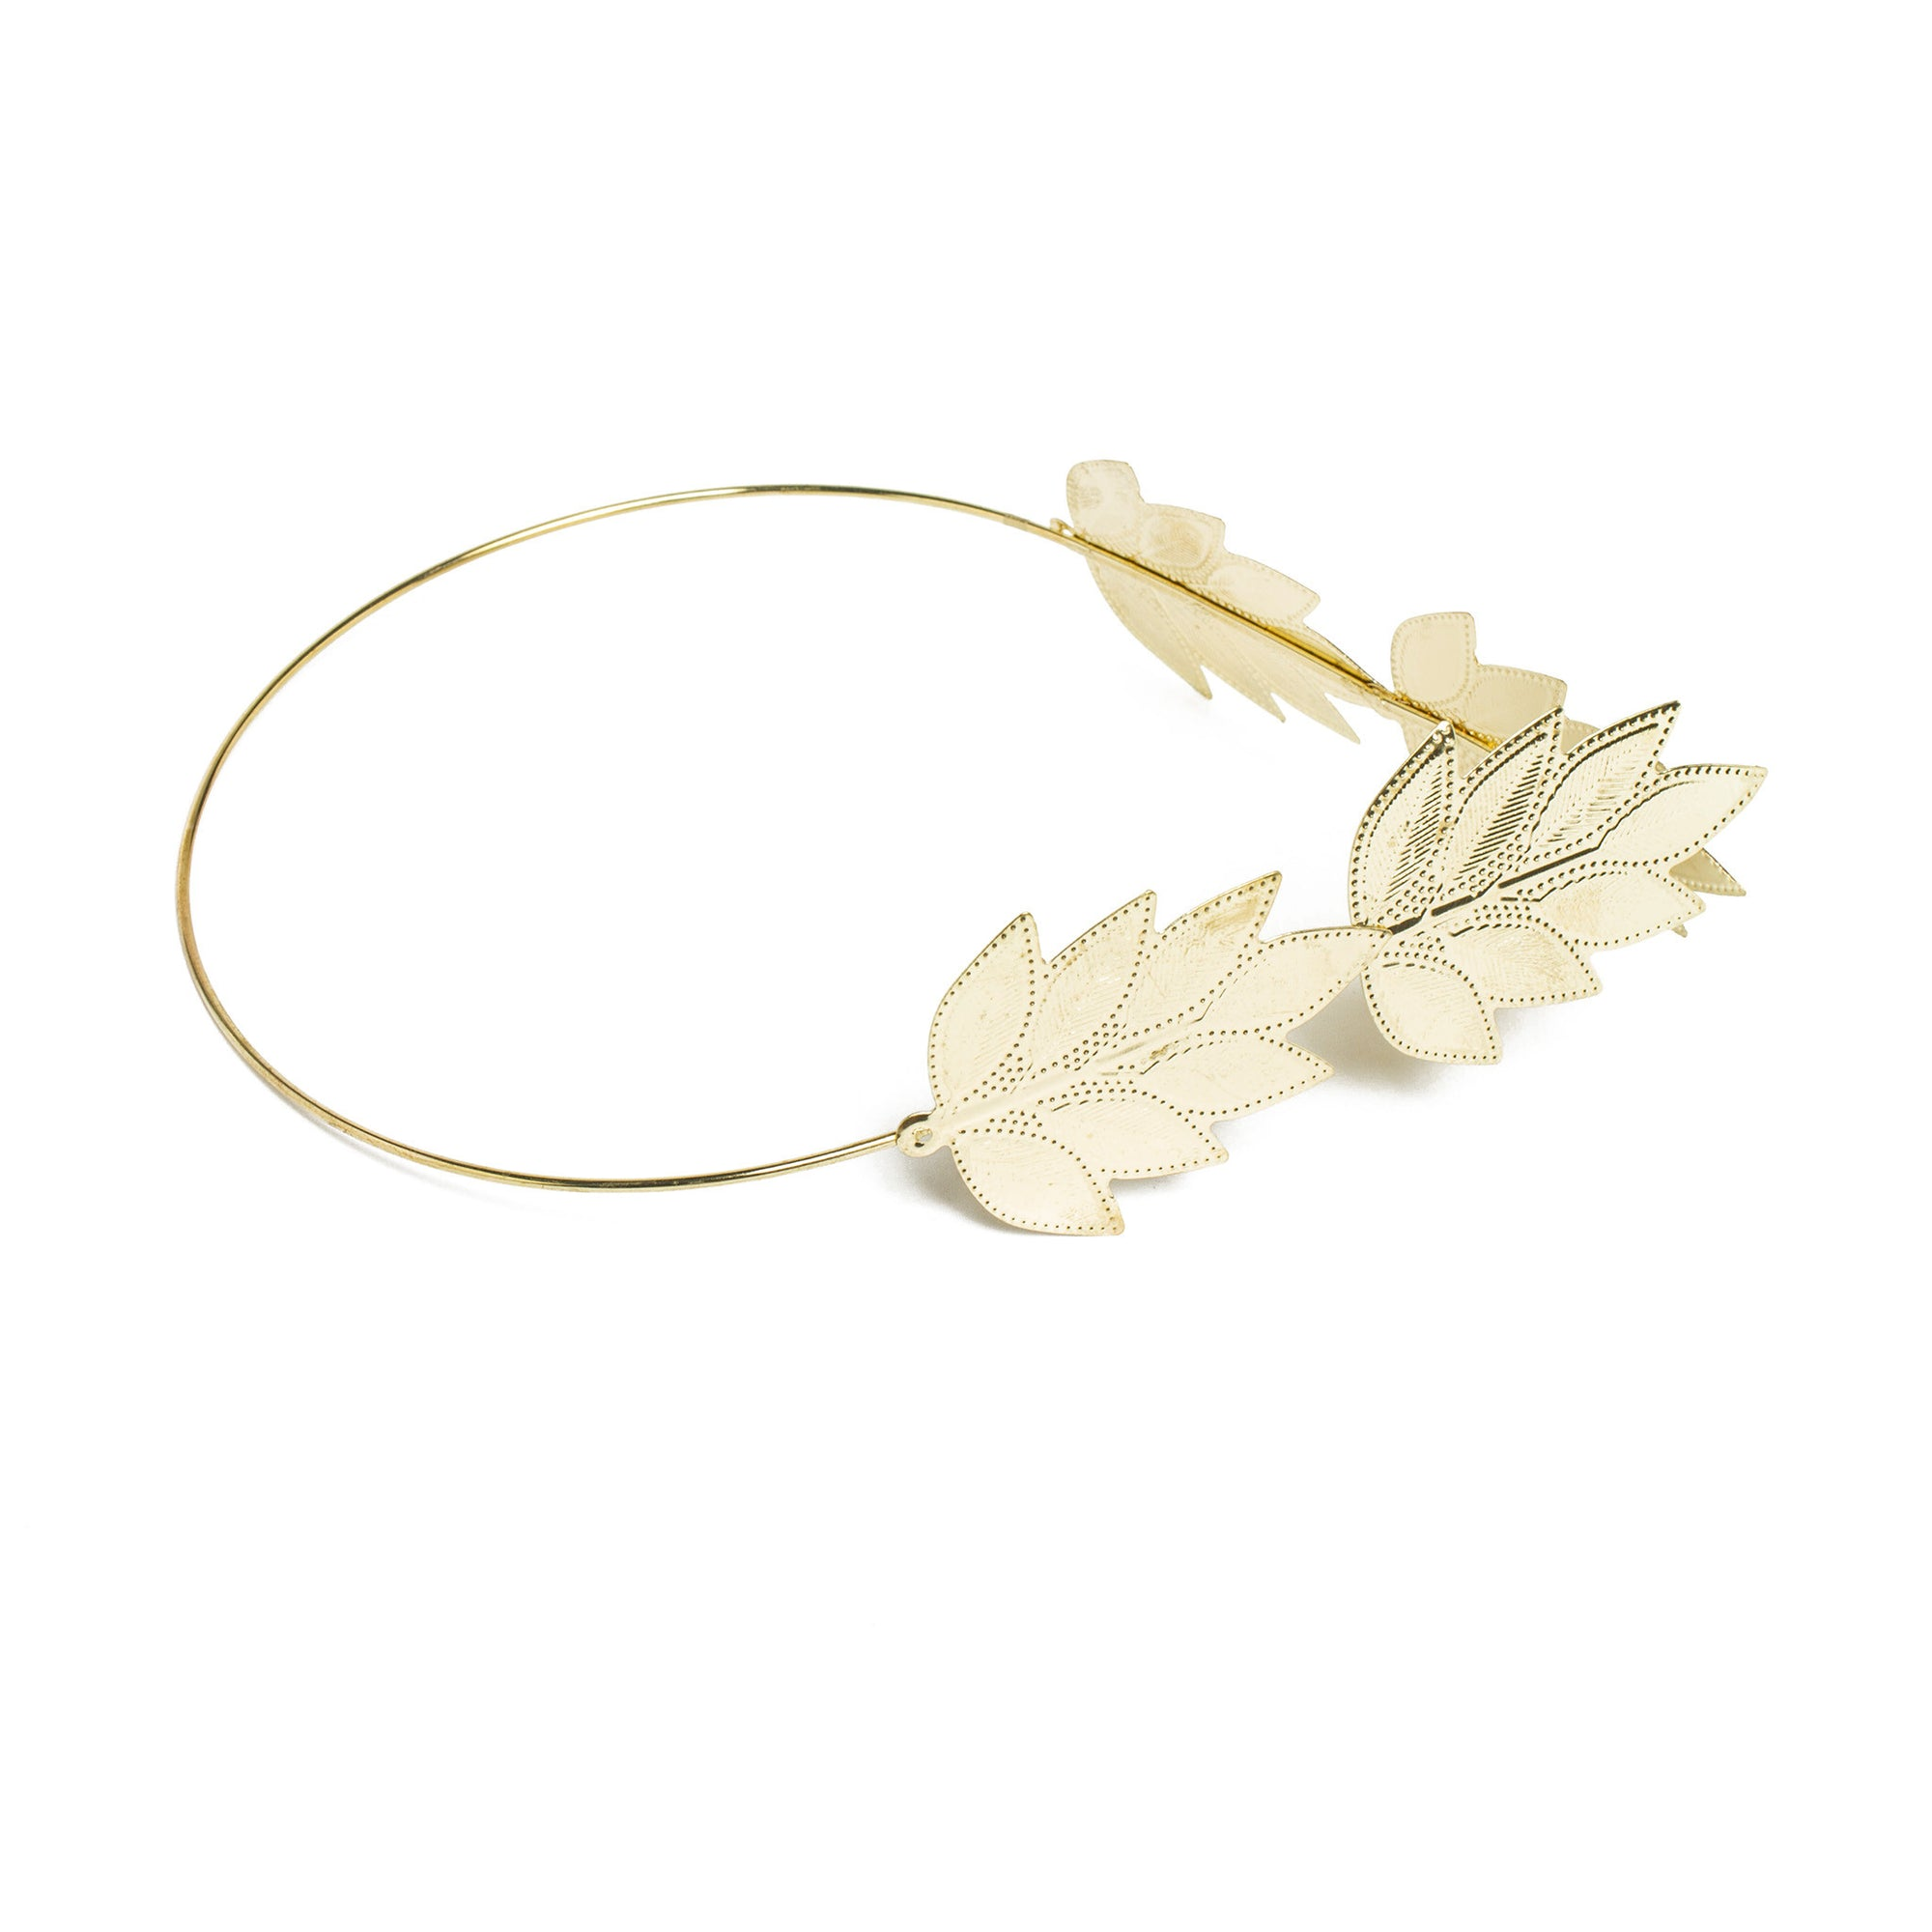 Olive Branch Wreath Headband | Getty Store